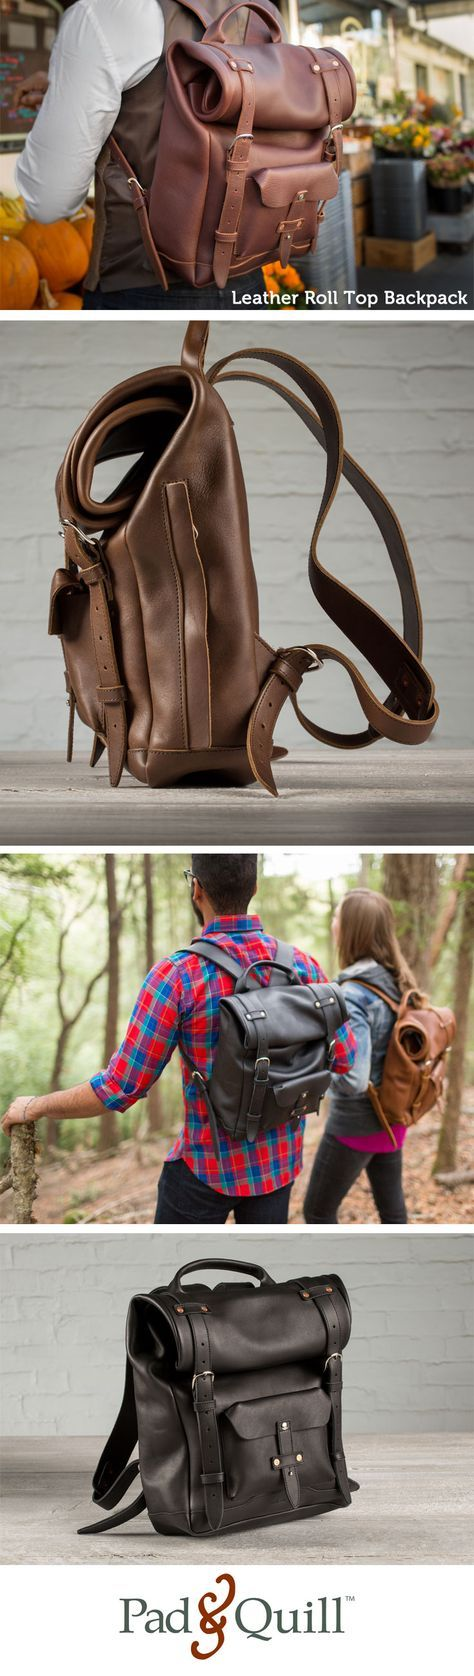 http://www.padandquill.com Leather Roll Top Laptop Backpack. Supple soft and extremely rugged tumbled full-grain saddle leather meets exquisite design to form a backpack that will outlast you!